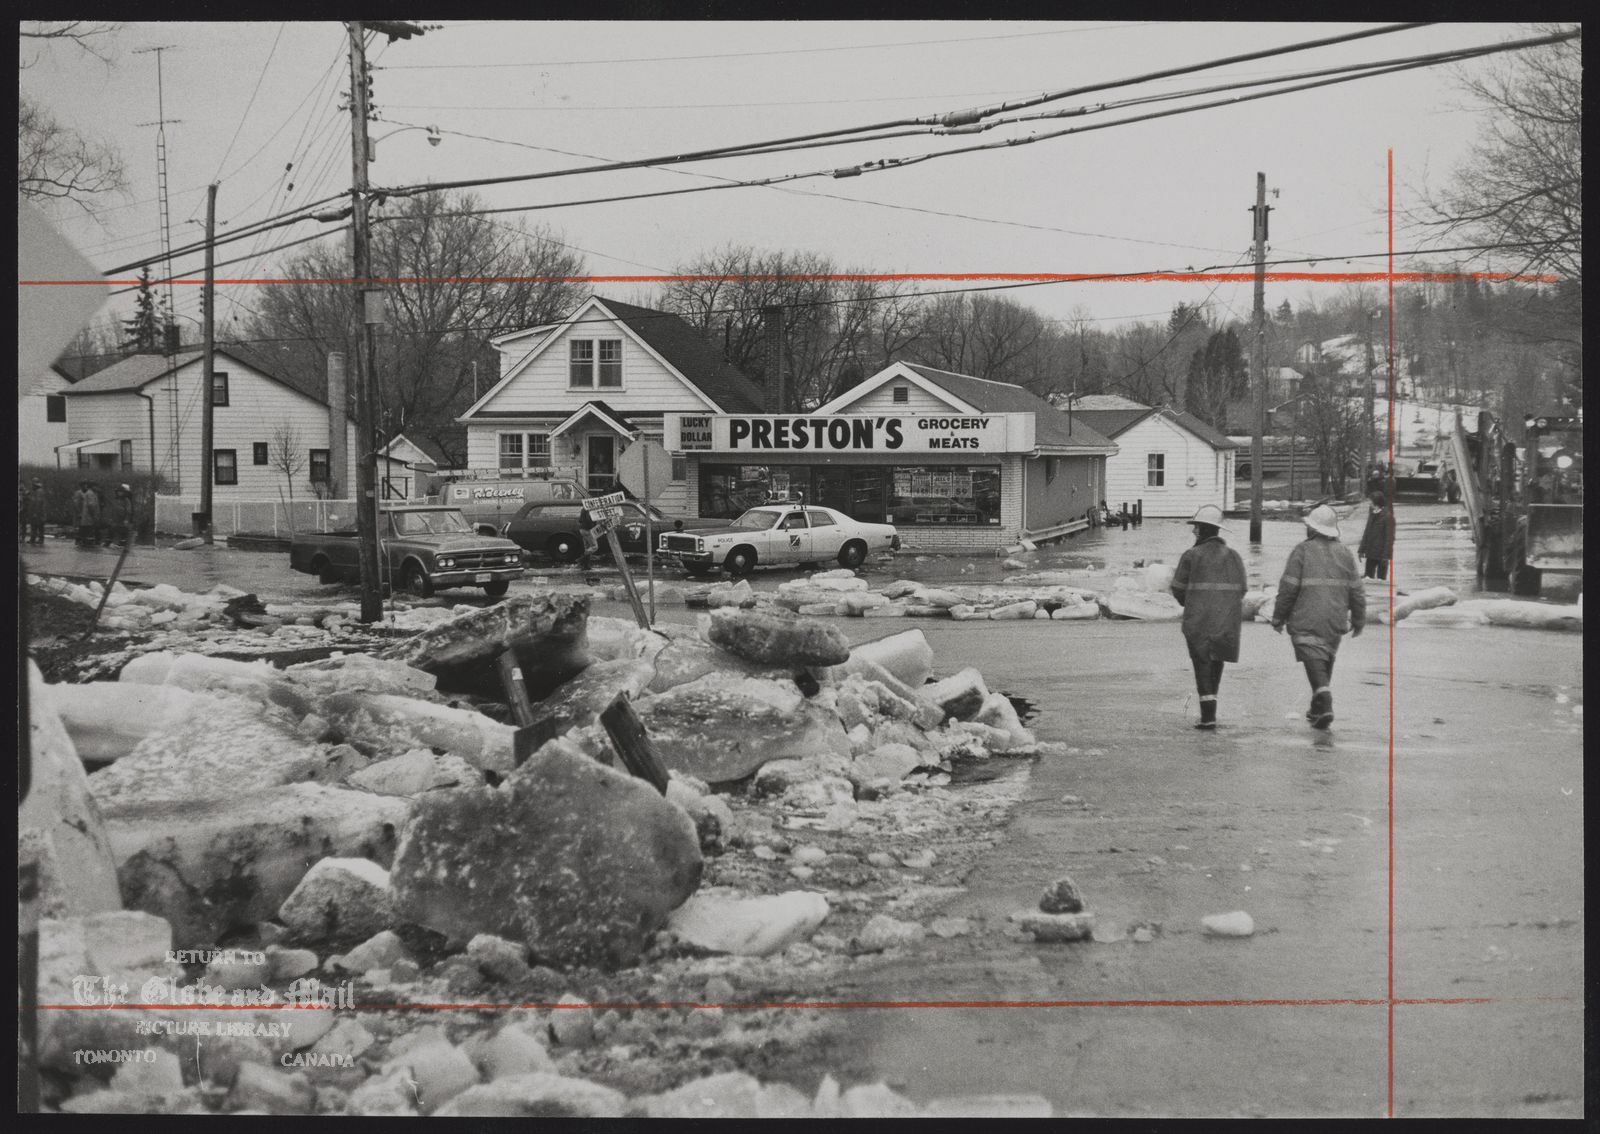 The notes transcribed from the back of this photograph are as follows: Large ice slabs clutter street in the aftermath of Credit River flooding in Glen Williams. The general store was hit by a foot of river water